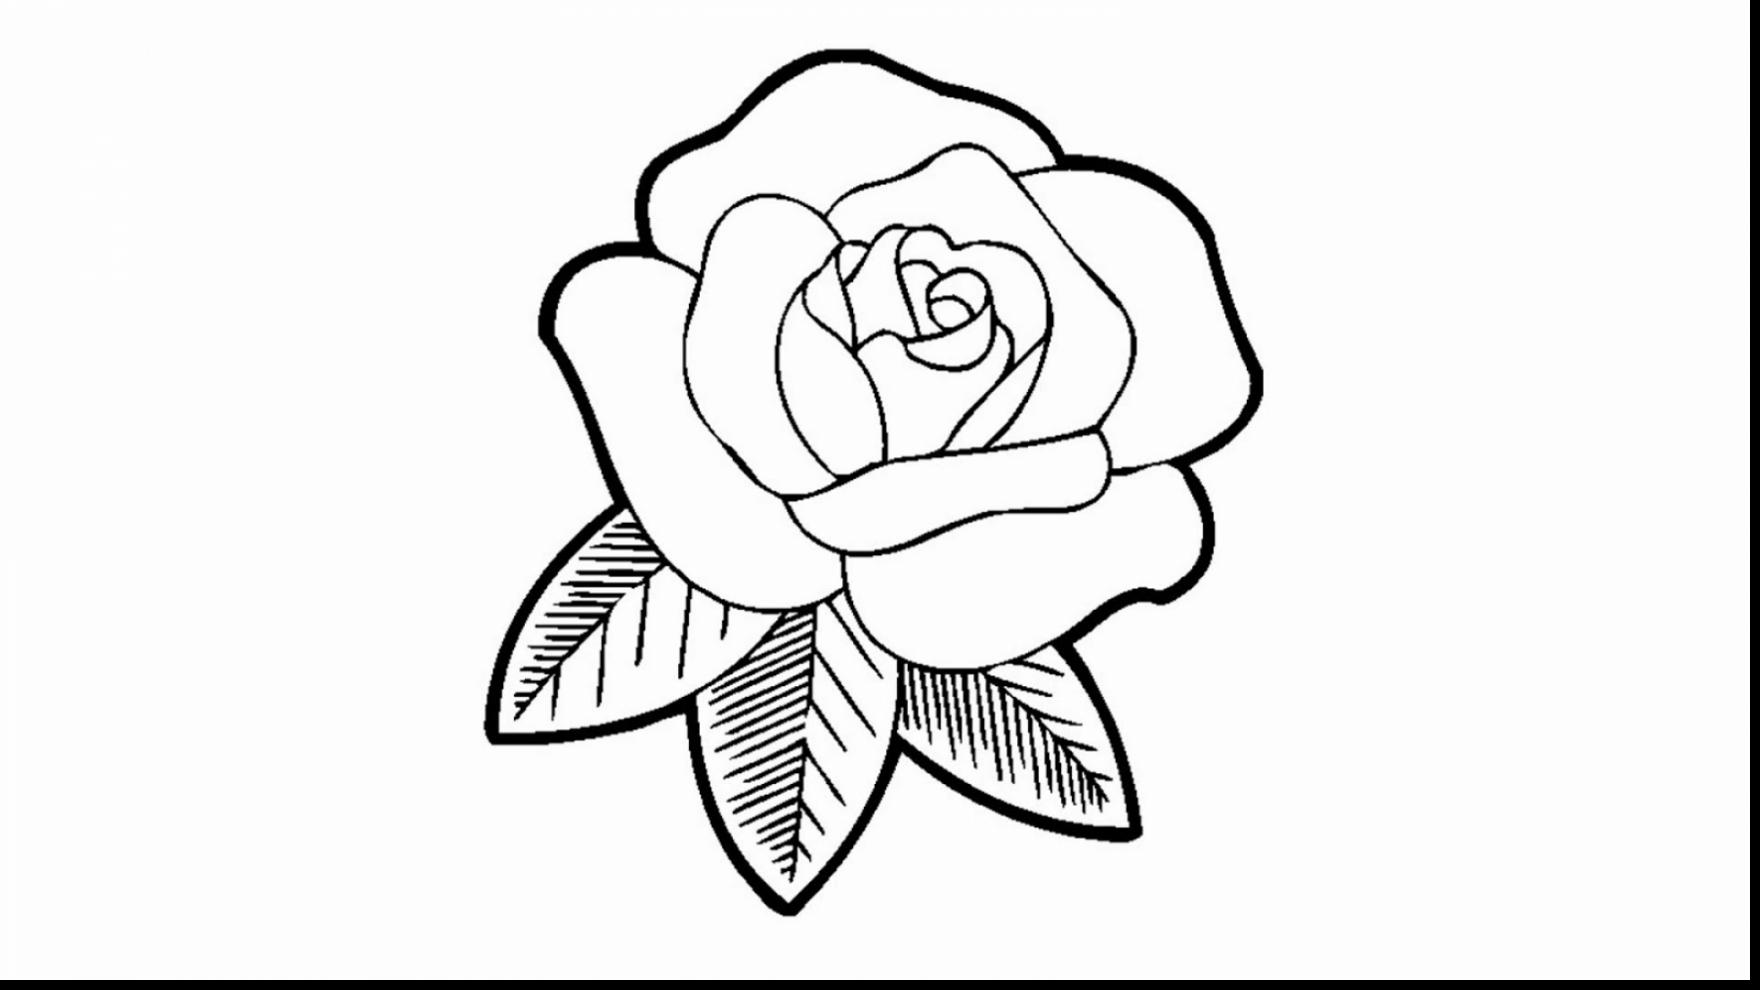 Rose Images Drawing at GetDrawings.com | Free for personal use Rose ...